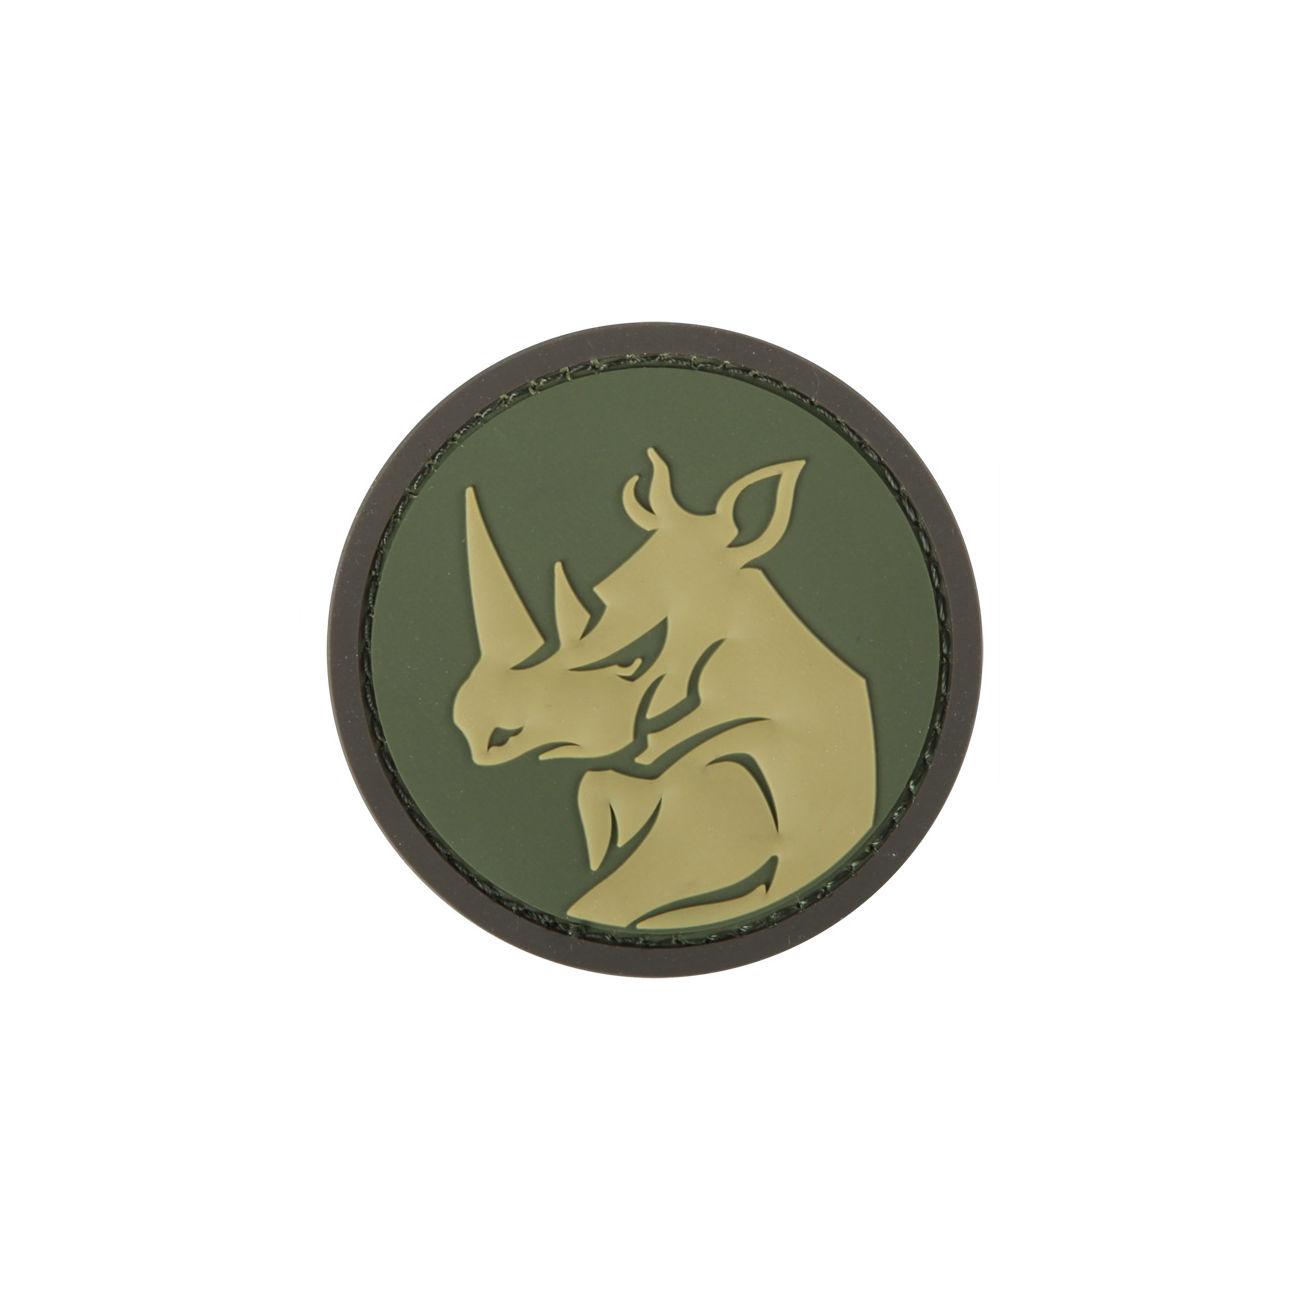 Mil-Spec Monkey 3D Rubber Patch Rhino Head Multicam 0